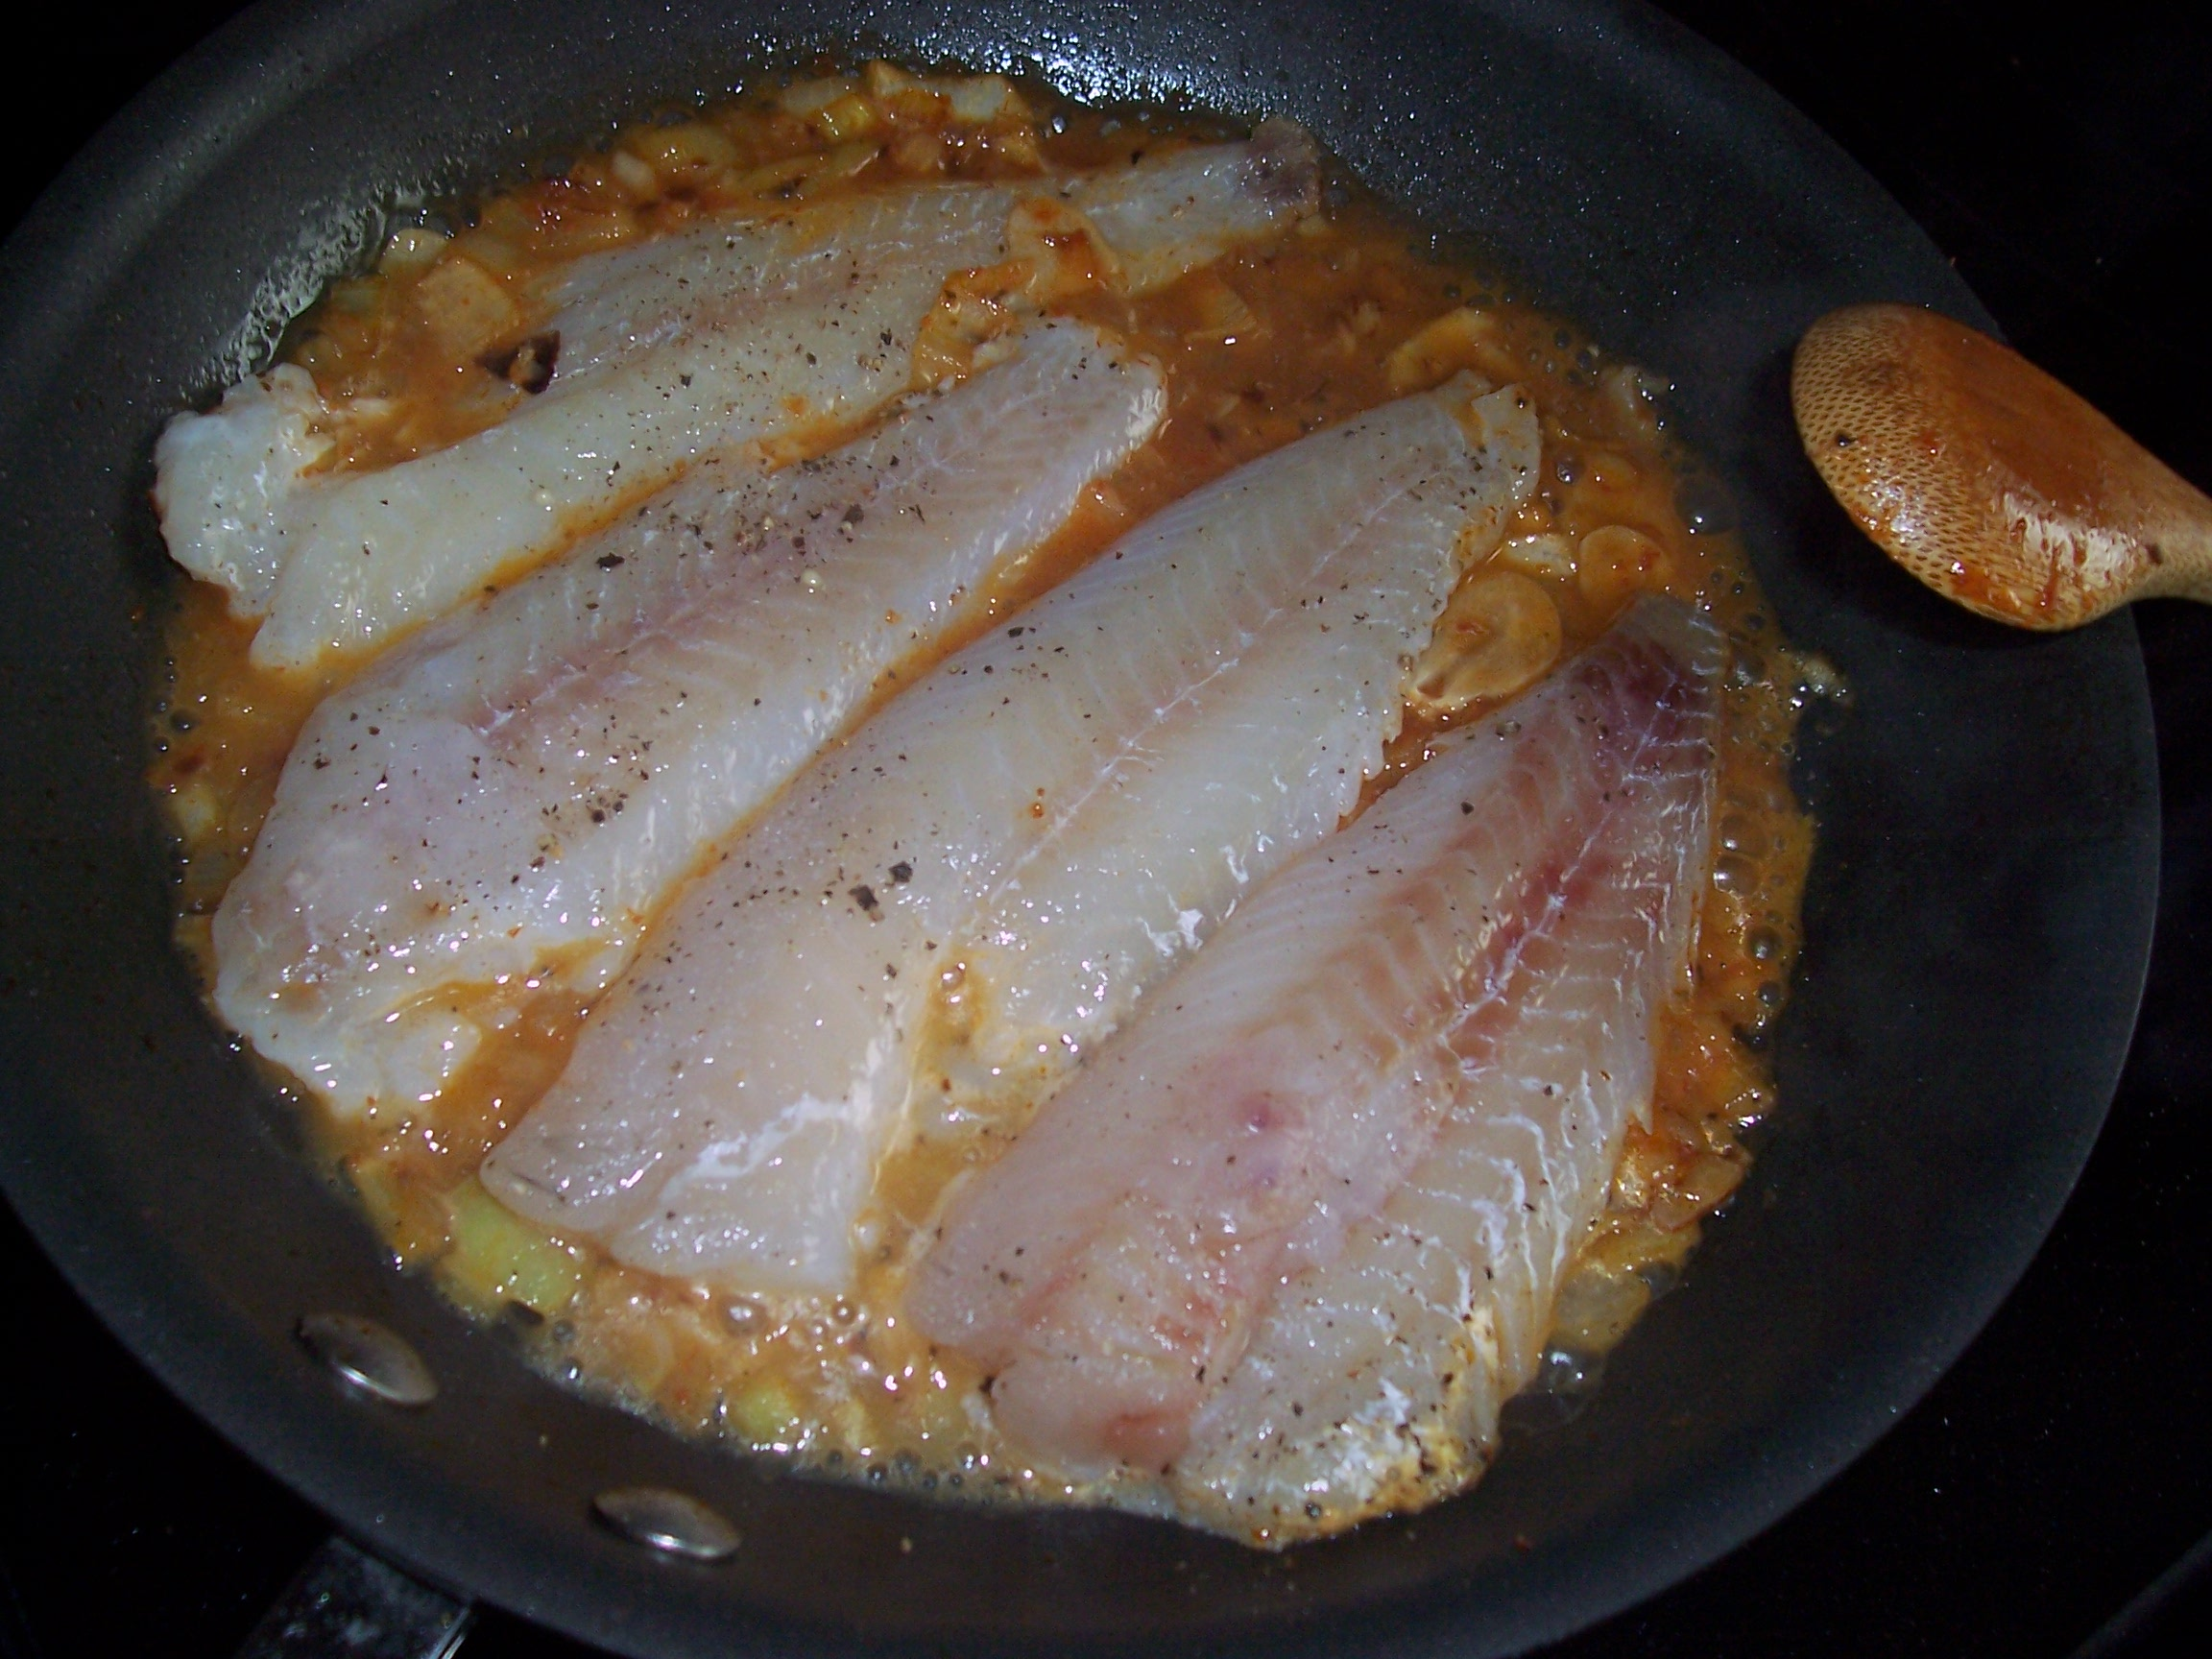 How to cook the cod in the oven